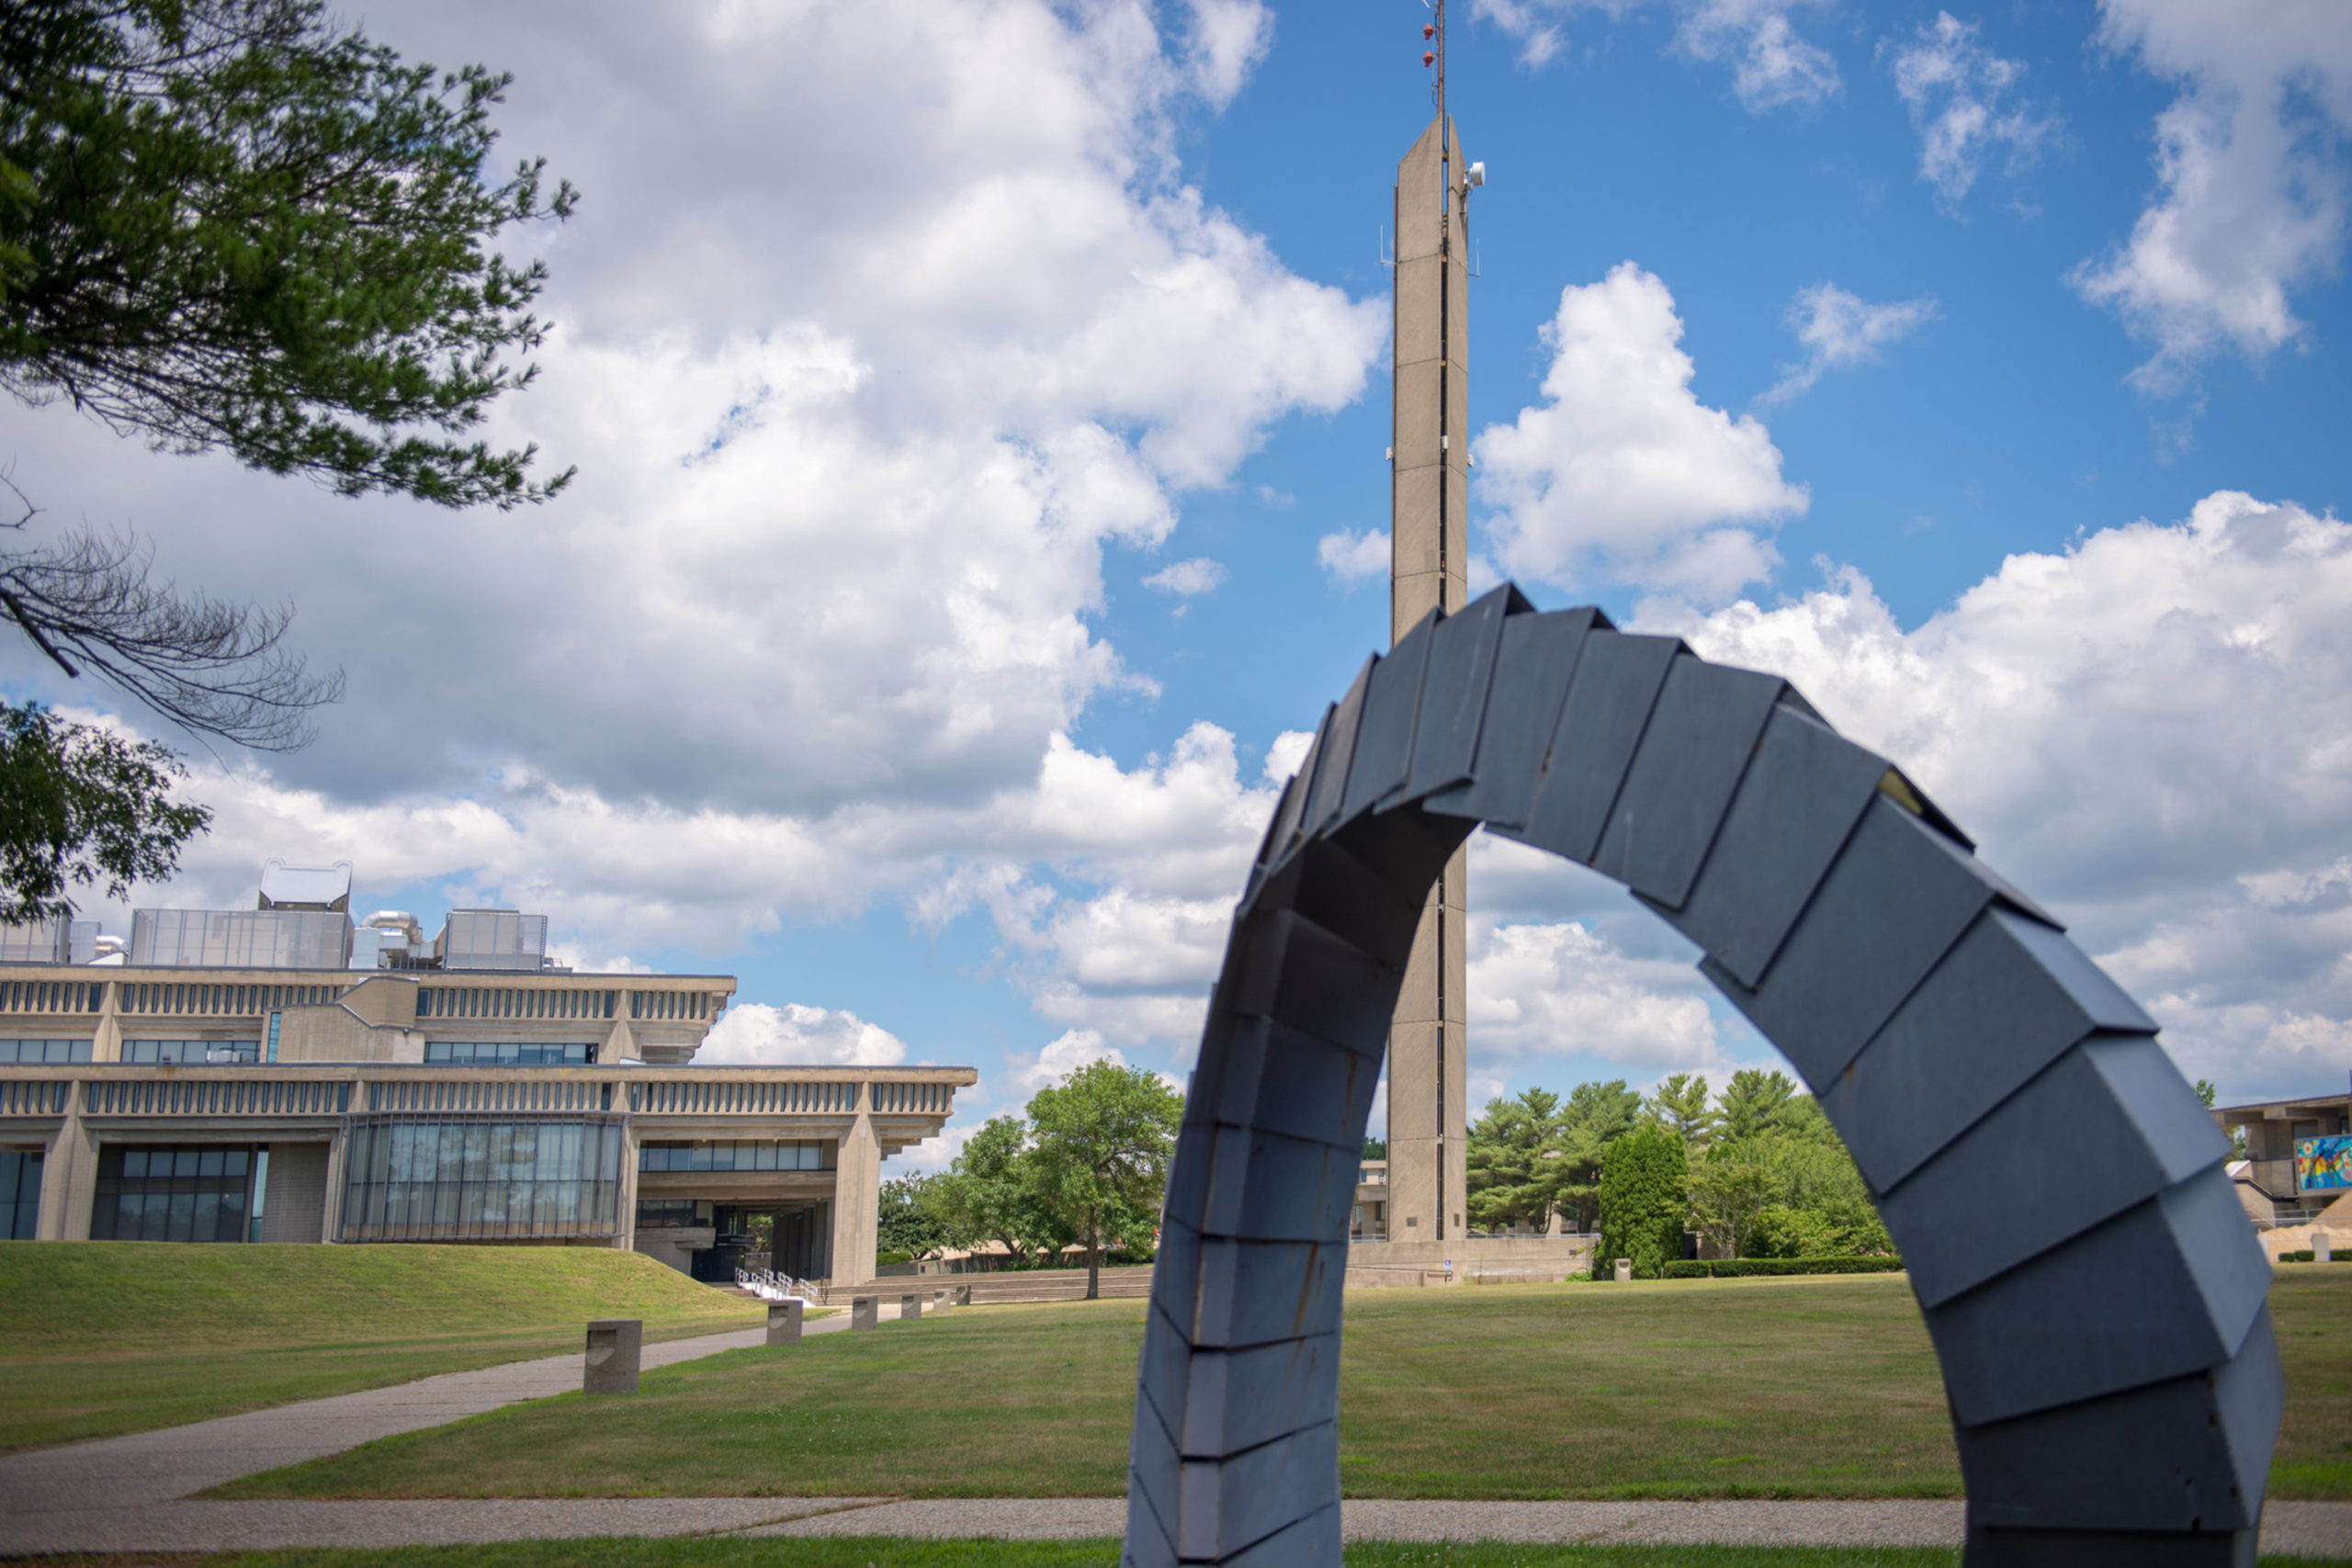 Campus arch sculpture pictured in front of UMass Dartmouth campanile